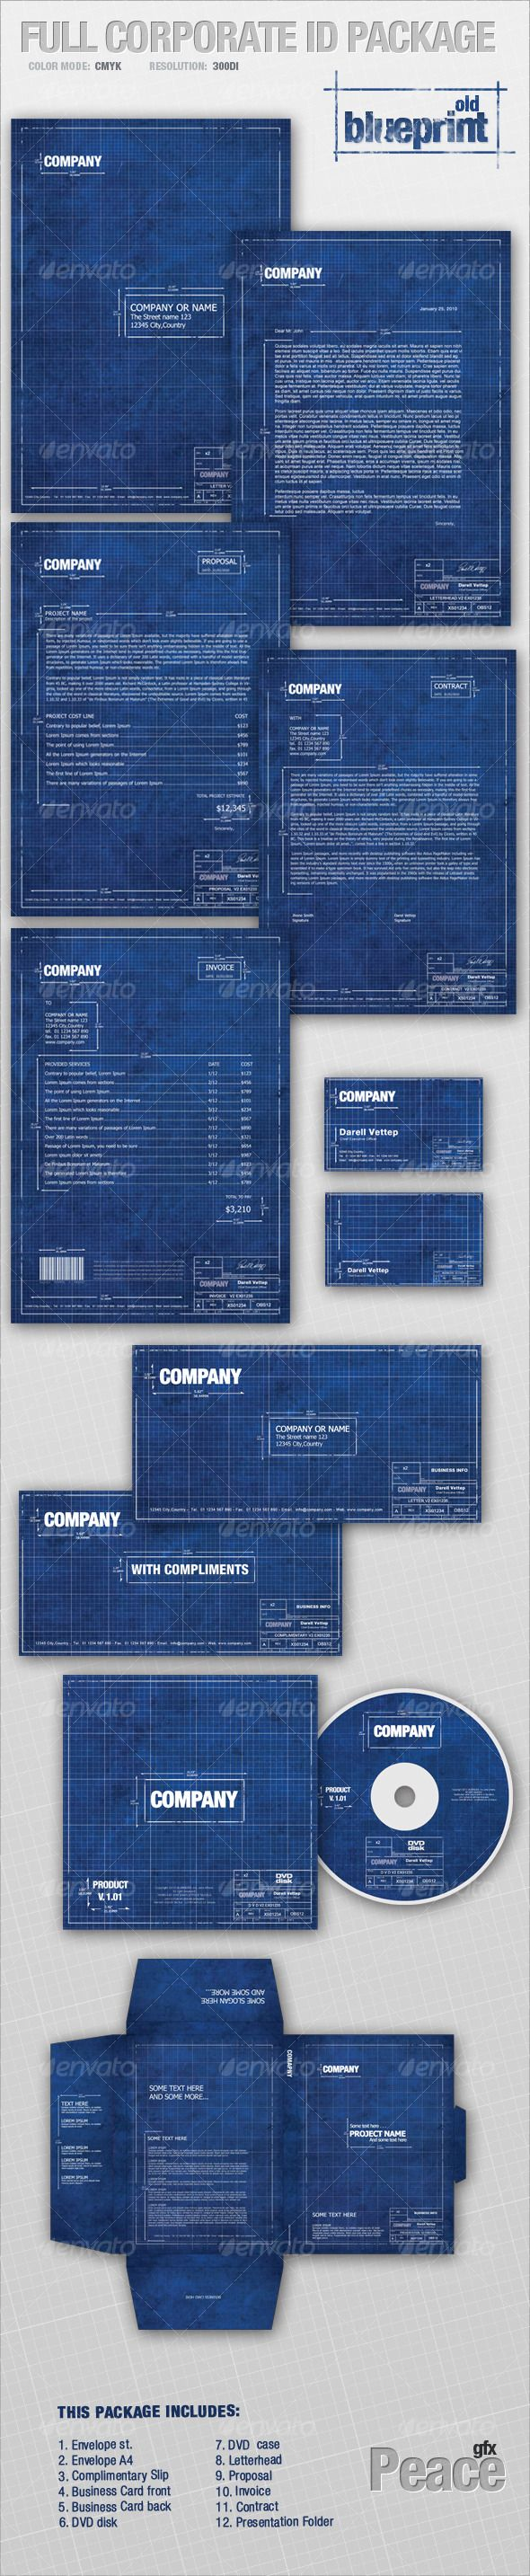 Corporate Identity is perfect way to create complete corporate style vitally important for any business. This is a High Quality package of complete printer-ready files for all the stationery needs of a business.  THIS PACKAGE CONTAINS : fully editable files, Envelope, Envelope C4, Complimentary Slip, Letterhead, Invoice, Proposal, Contract, Business Card, CD/DVD case, & disk, Presentation Folder    PSD Templates – $8.99  Finishing & Printed Lots Pricing Upon Request  Digital Delivery…